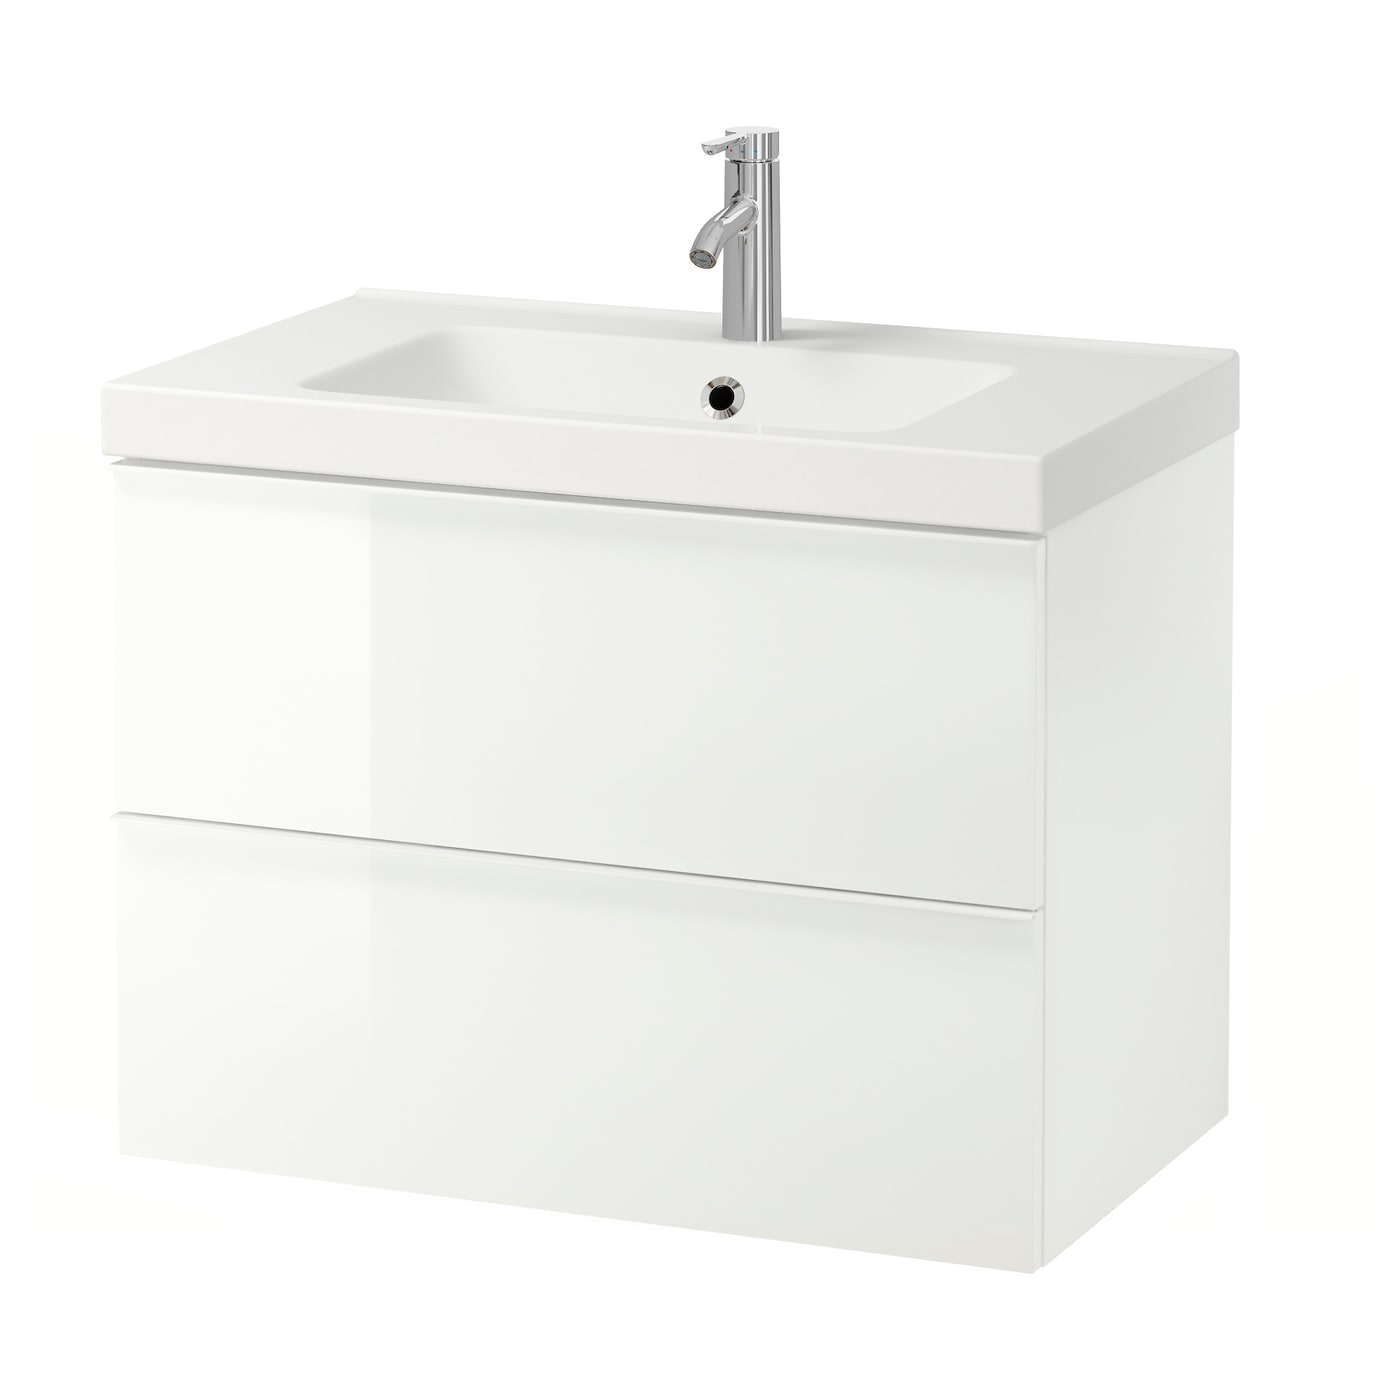 odensvik godmorgon meuble lavabo 2tir brillant blanc. Black Bedroom Furniture Sets. Home Design Ideas